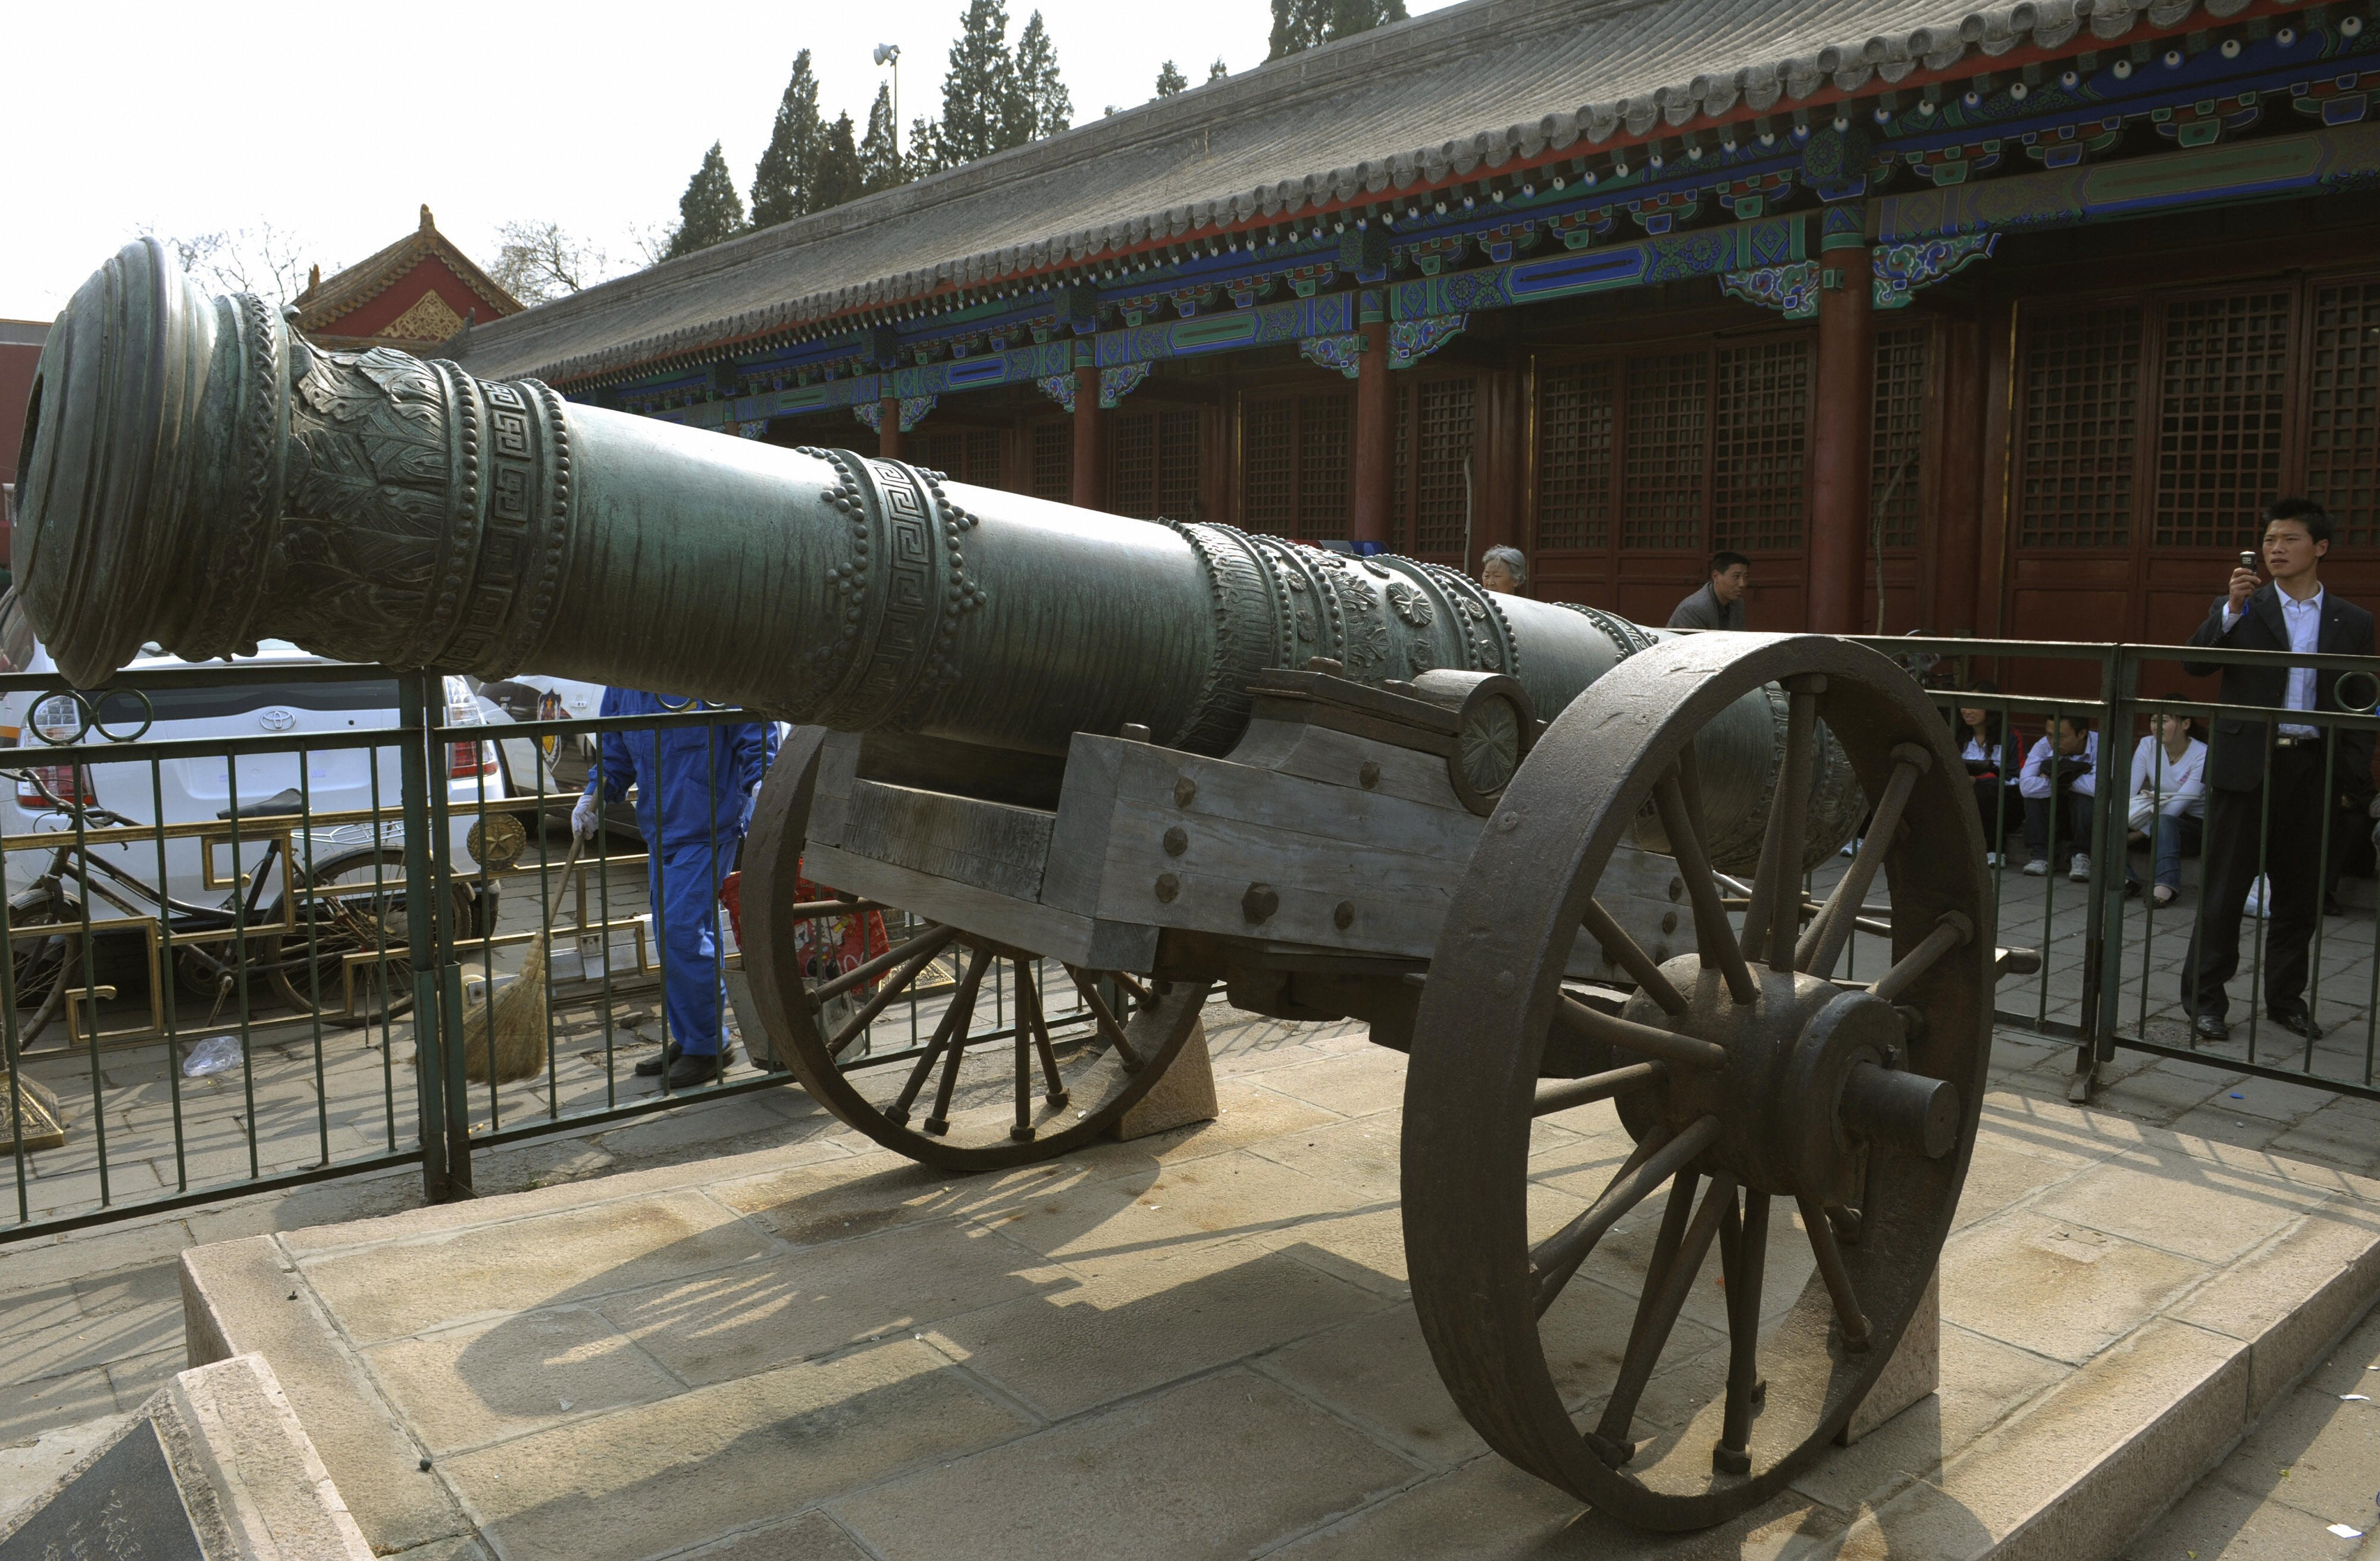 The Chinese were the first to invent the cannon in the 12th century